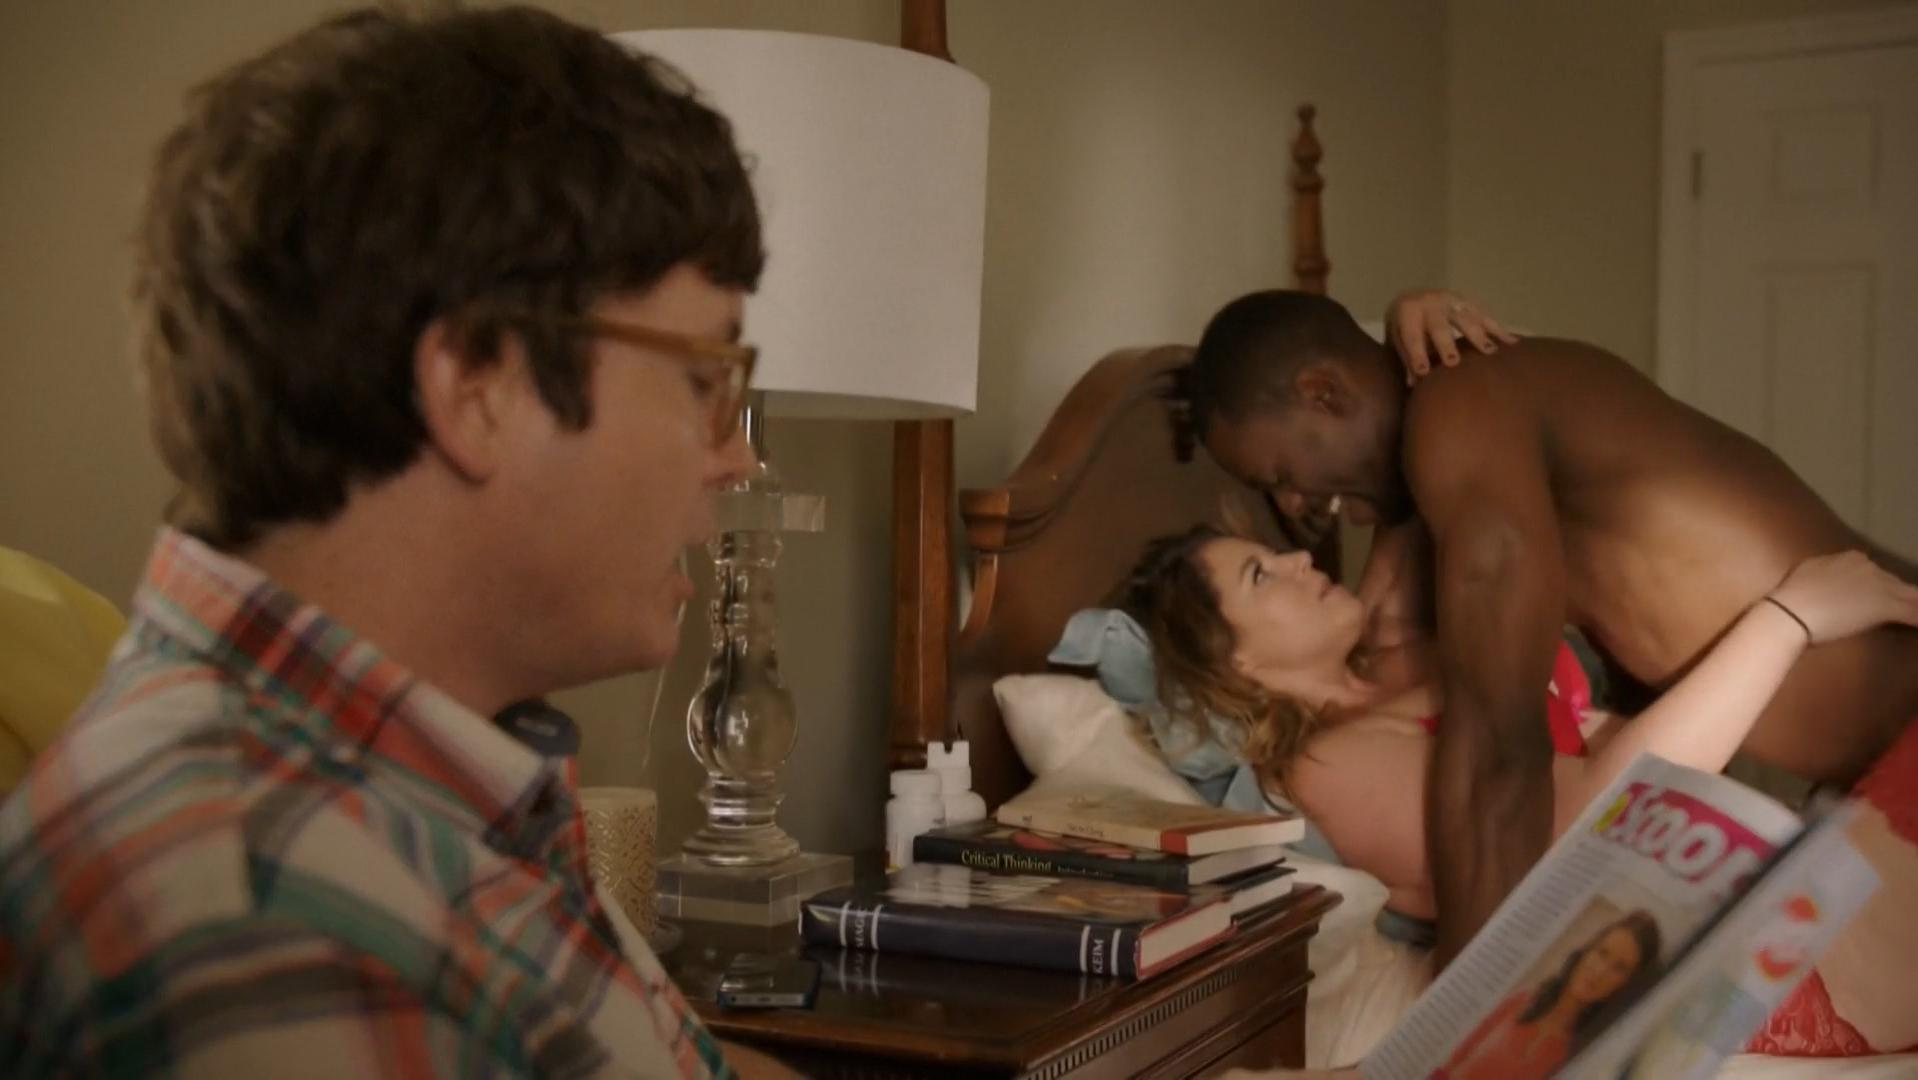 Kether Donohue sexy - You're the Worst s03e08 (2016)